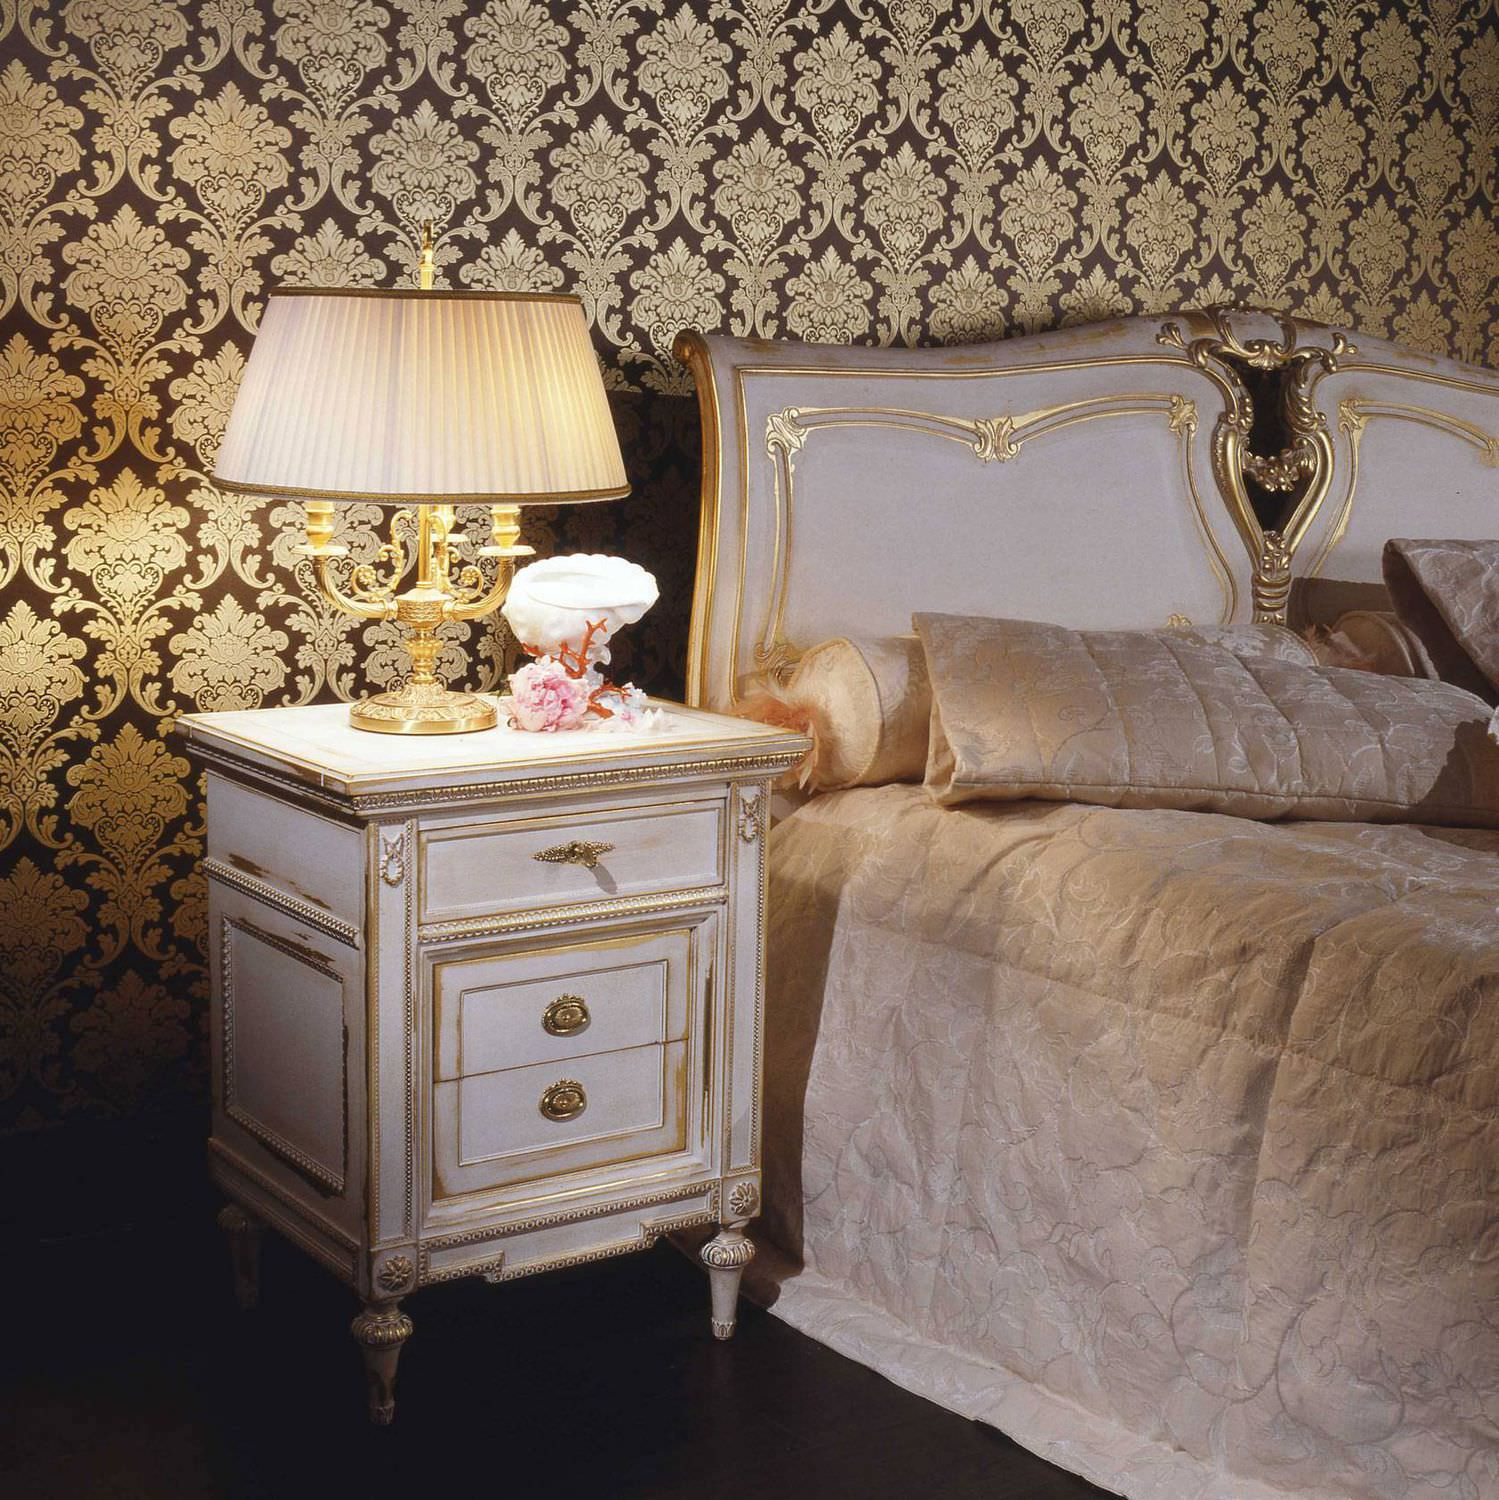 Louis xvi bedroom furniture -  Louis Xvi Style Bedside Table Wooden Rectangular White And Gold Vimercati Meda Luxury Classic